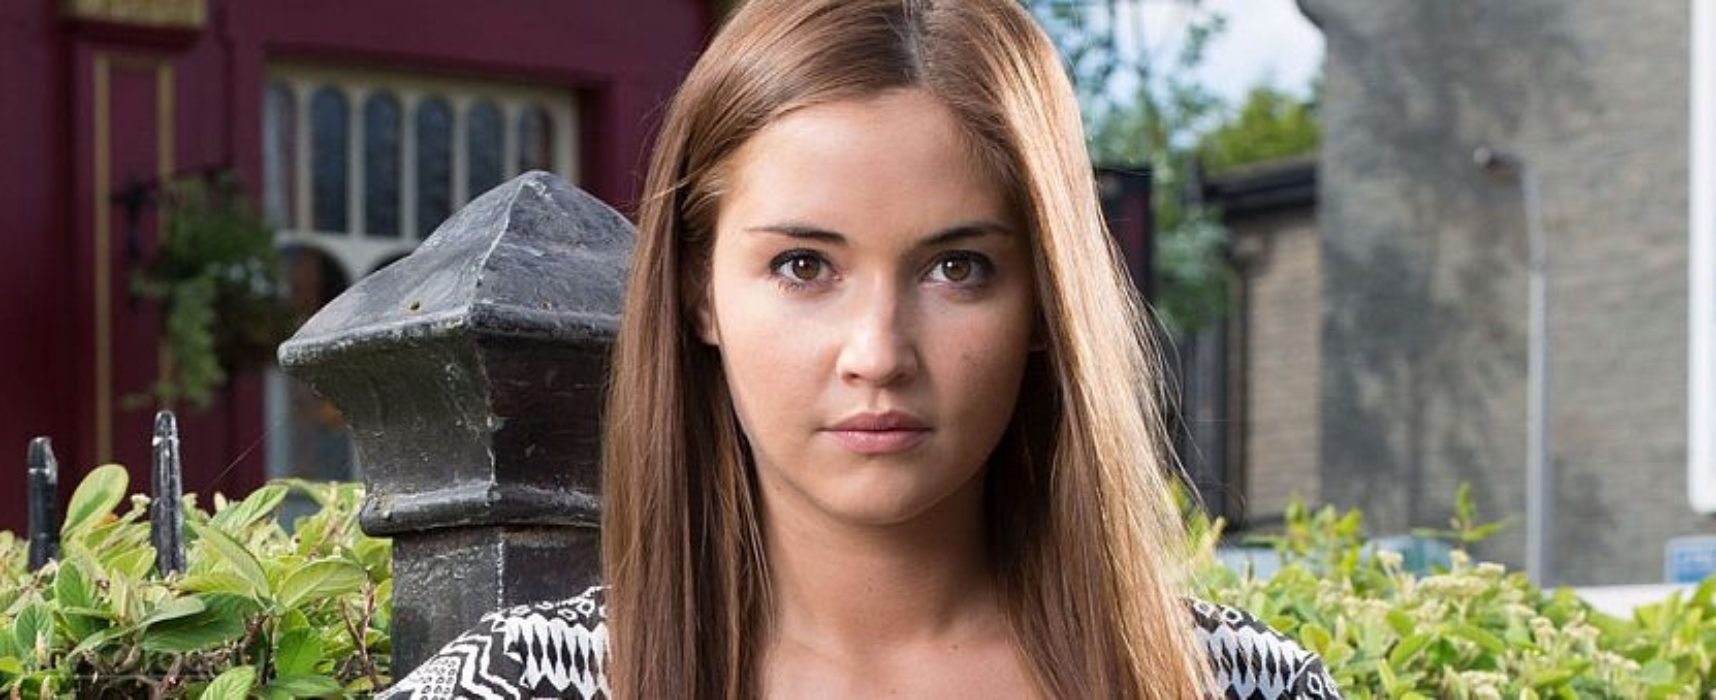 Jacqueline Jossa and Lorna Fitzgerald to leave EastEnders